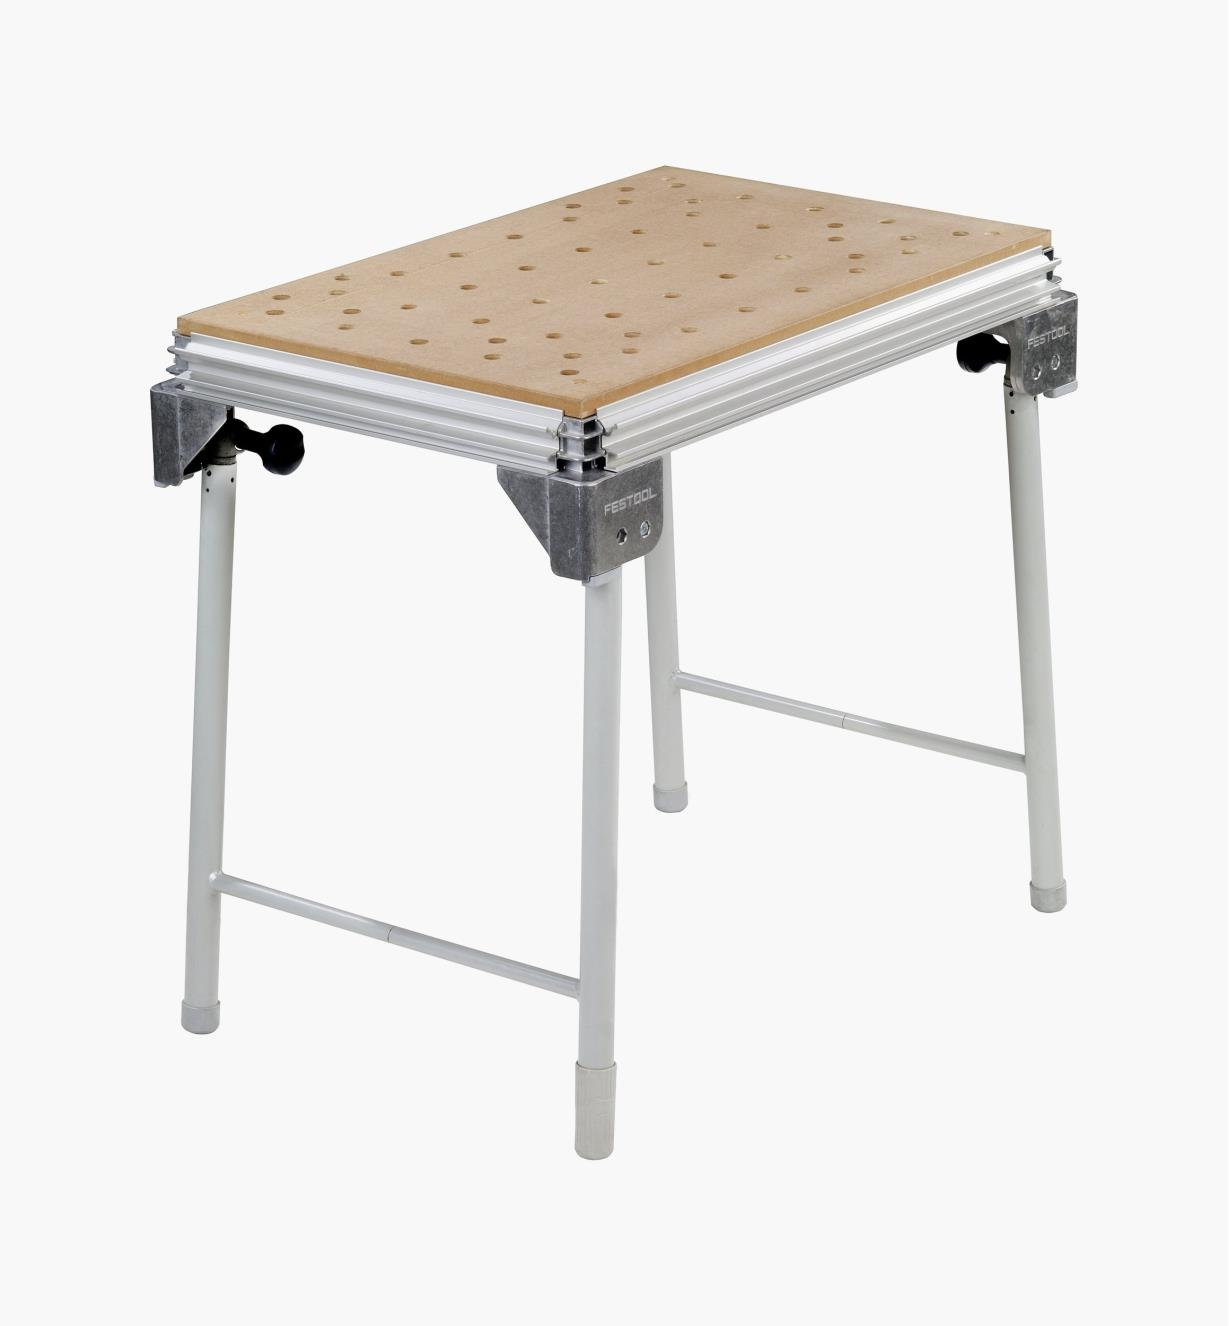 ZA495465 - MFT/3-Kapex Multifunction Table